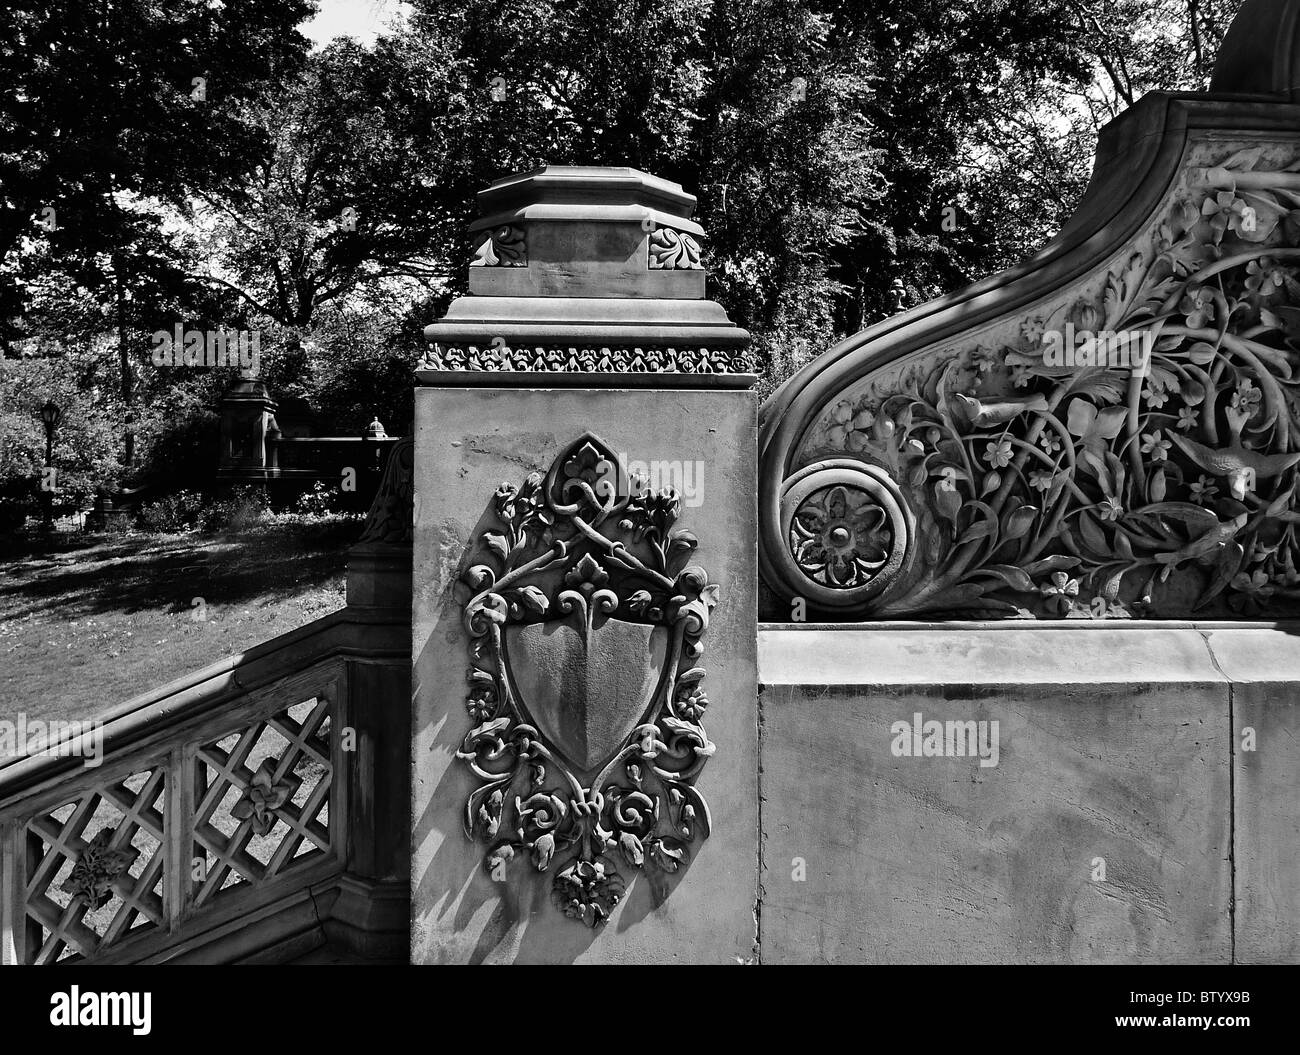 Historical architectural details, Central Park, New York City. - Stock Image